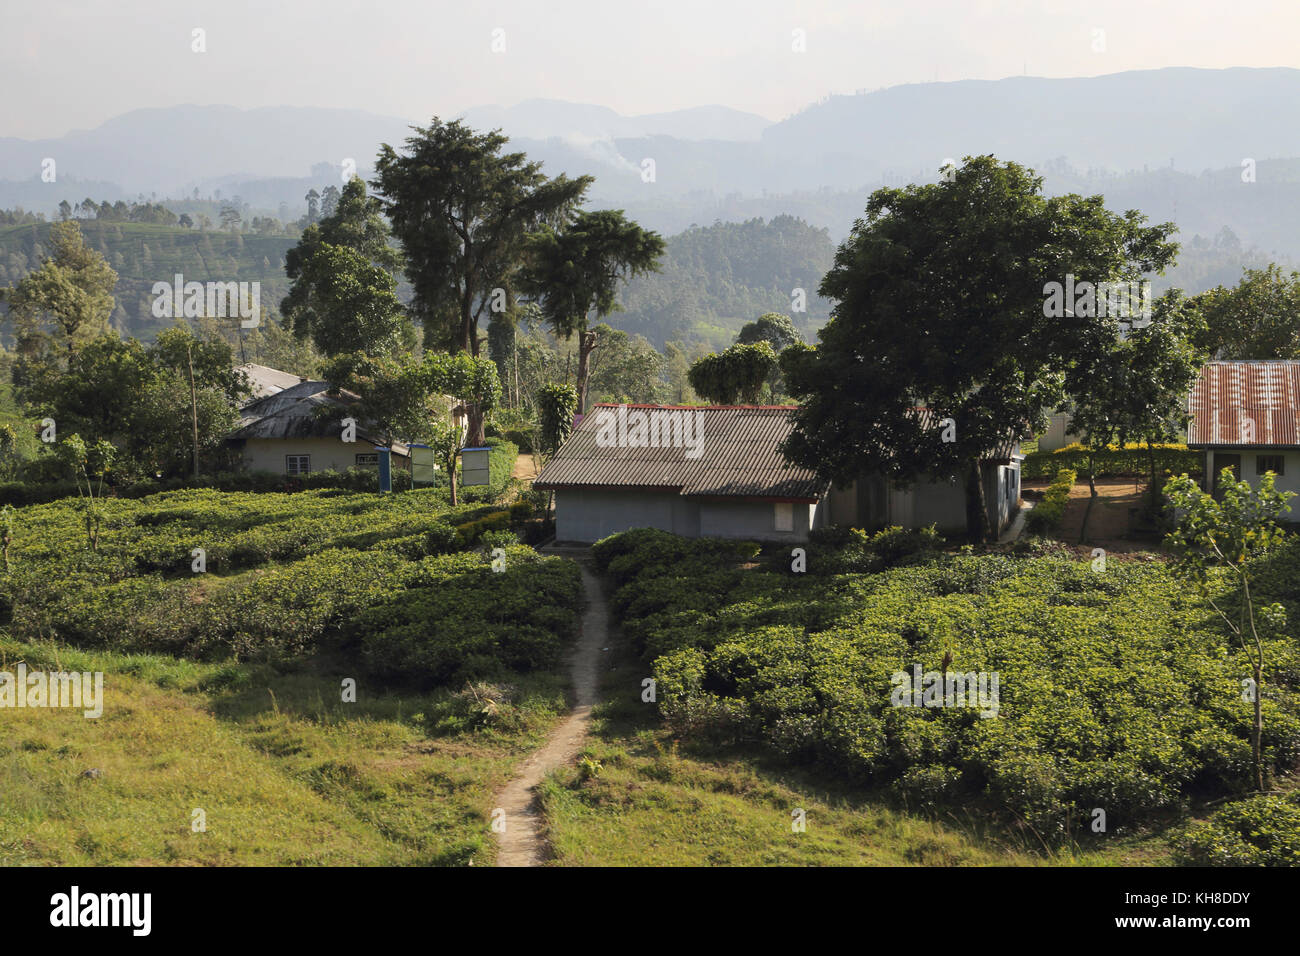 Hill Country Central Province Sri Lanka Tea Pickers Cottages at Tea Plantation - Stock Image